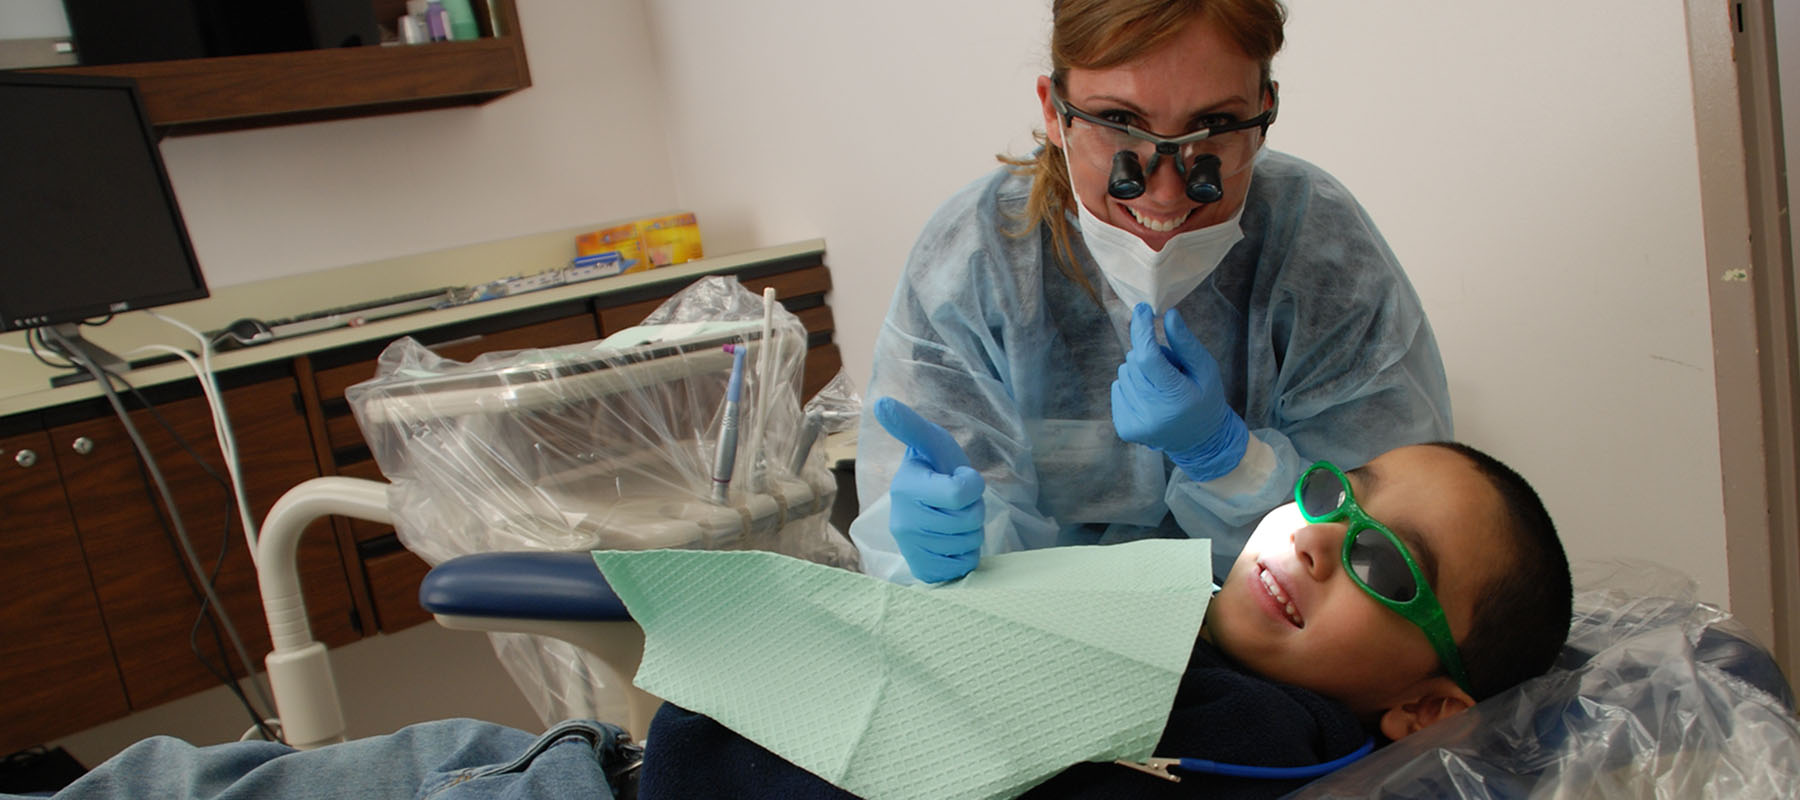 a child with googles on gets his teeth cleaned at the dentist